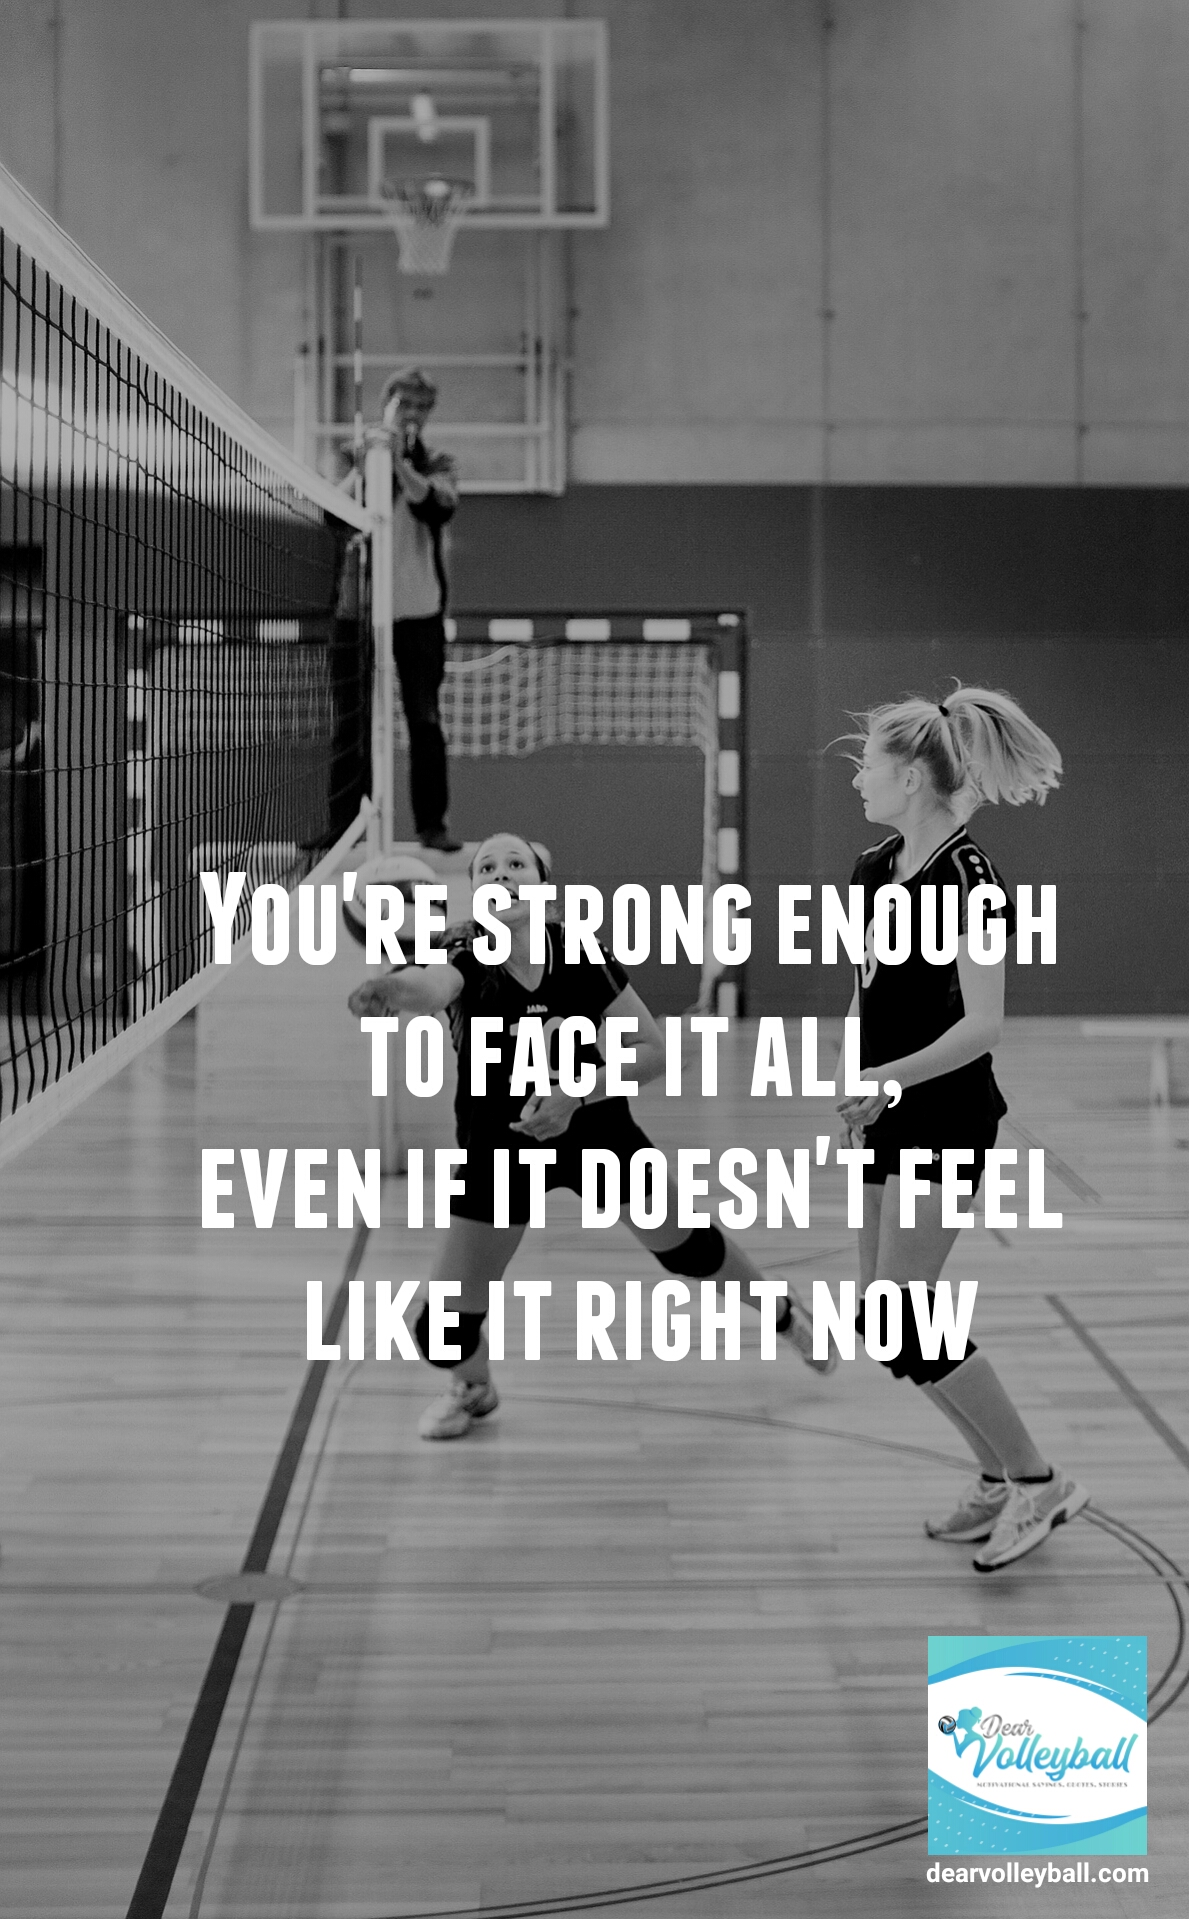 You're strong enough to face it all even if it doesnt feel like it right now and other motivational volleyball quotes on DearVolleyball.com